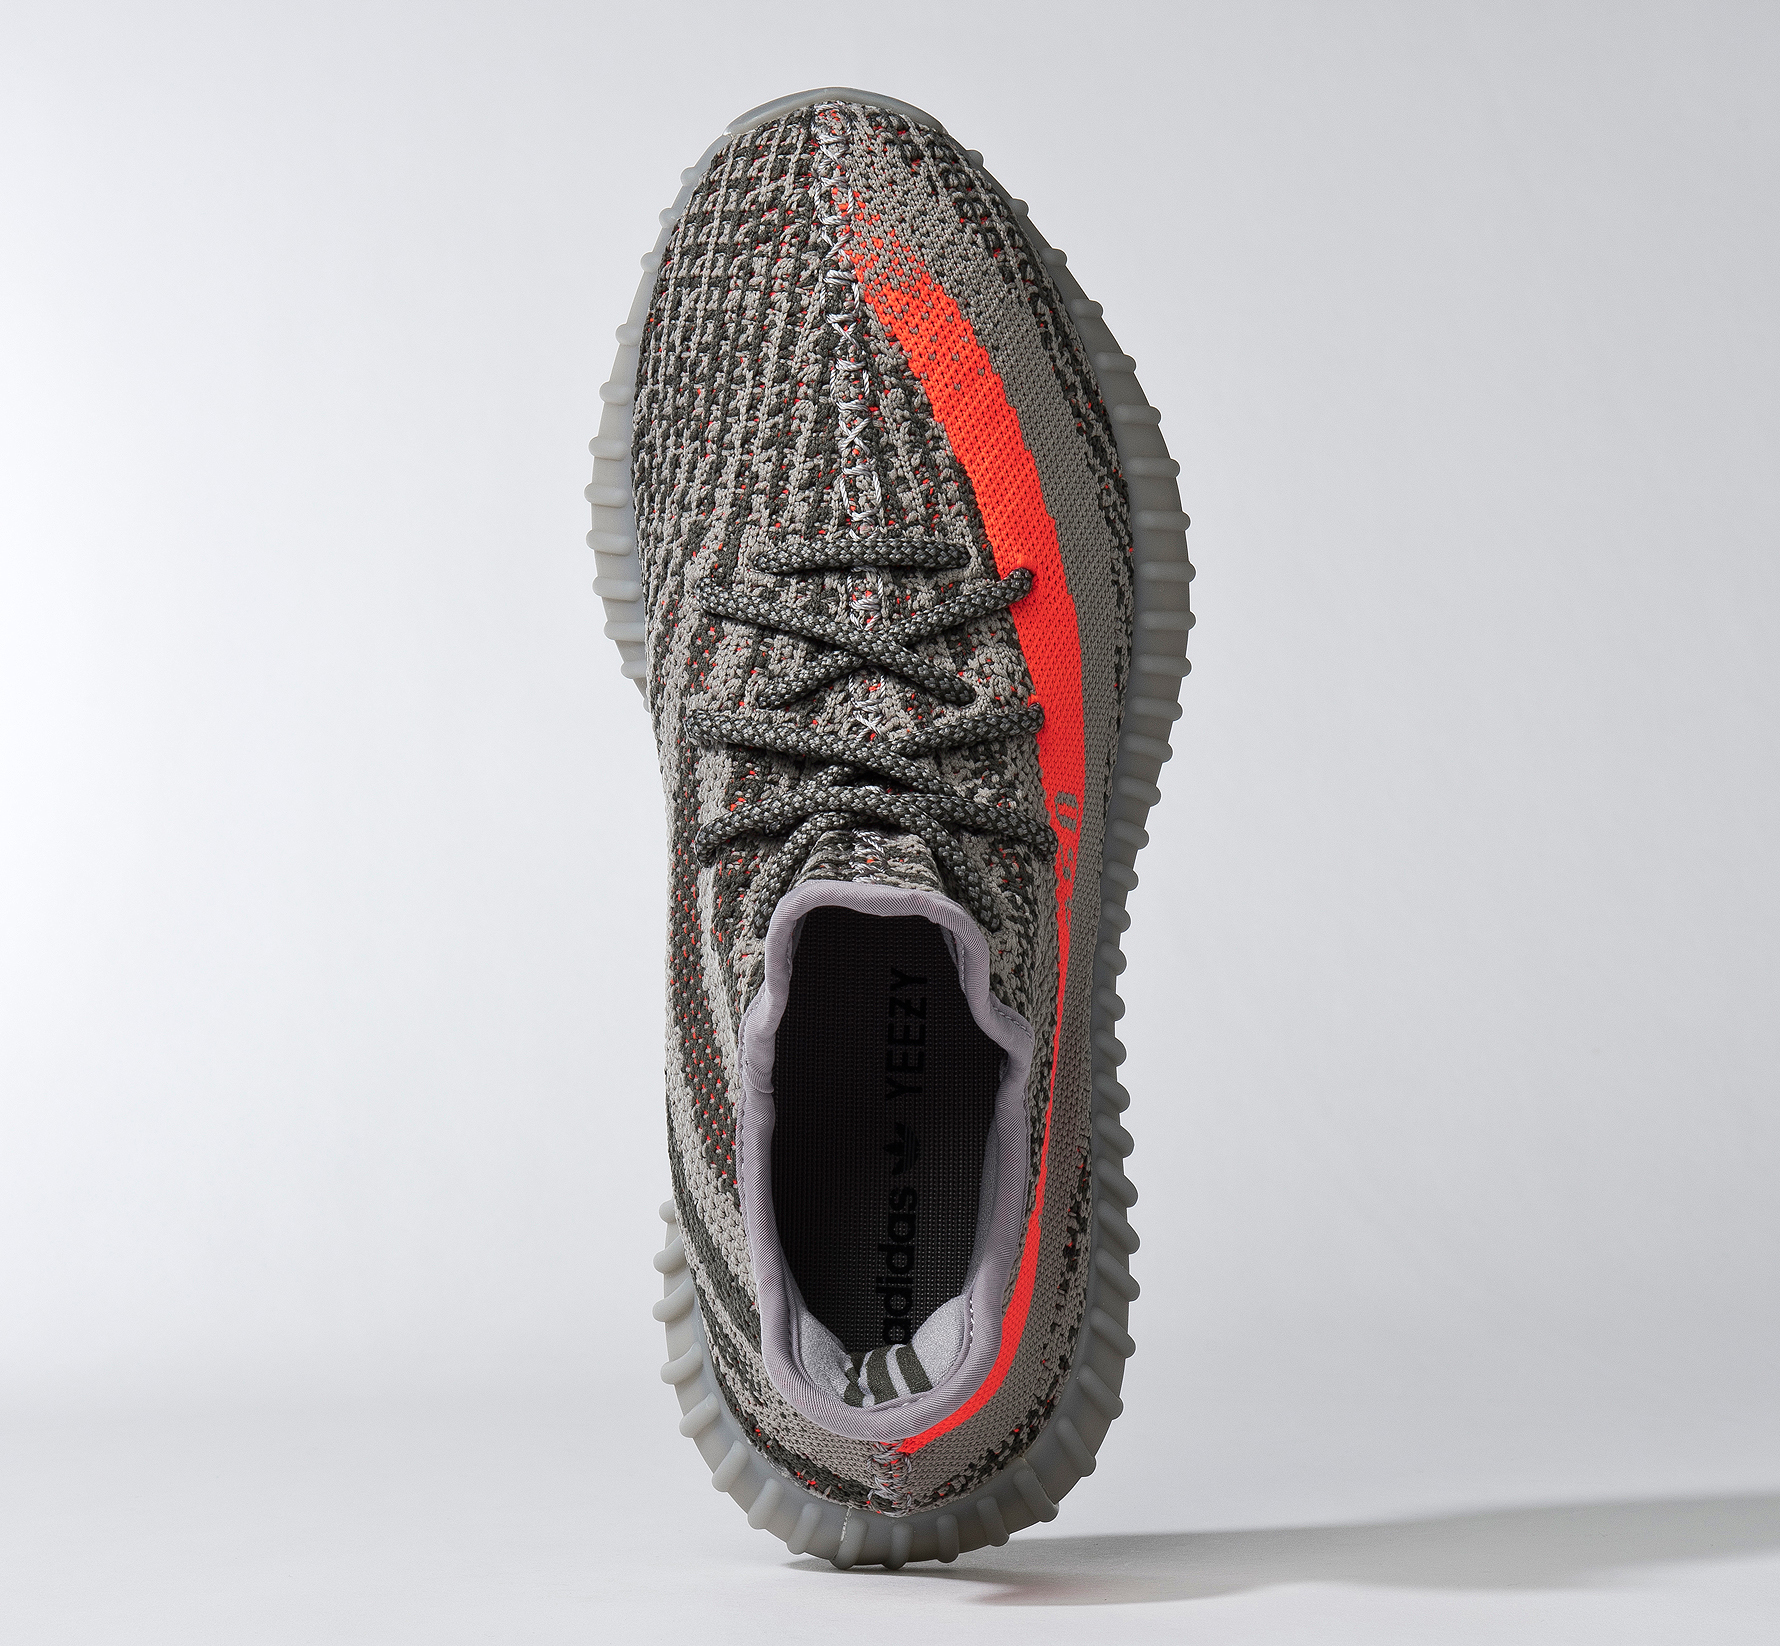 Adidas yeezy 350 boost oxford tan release date Store list to Buy BMKz